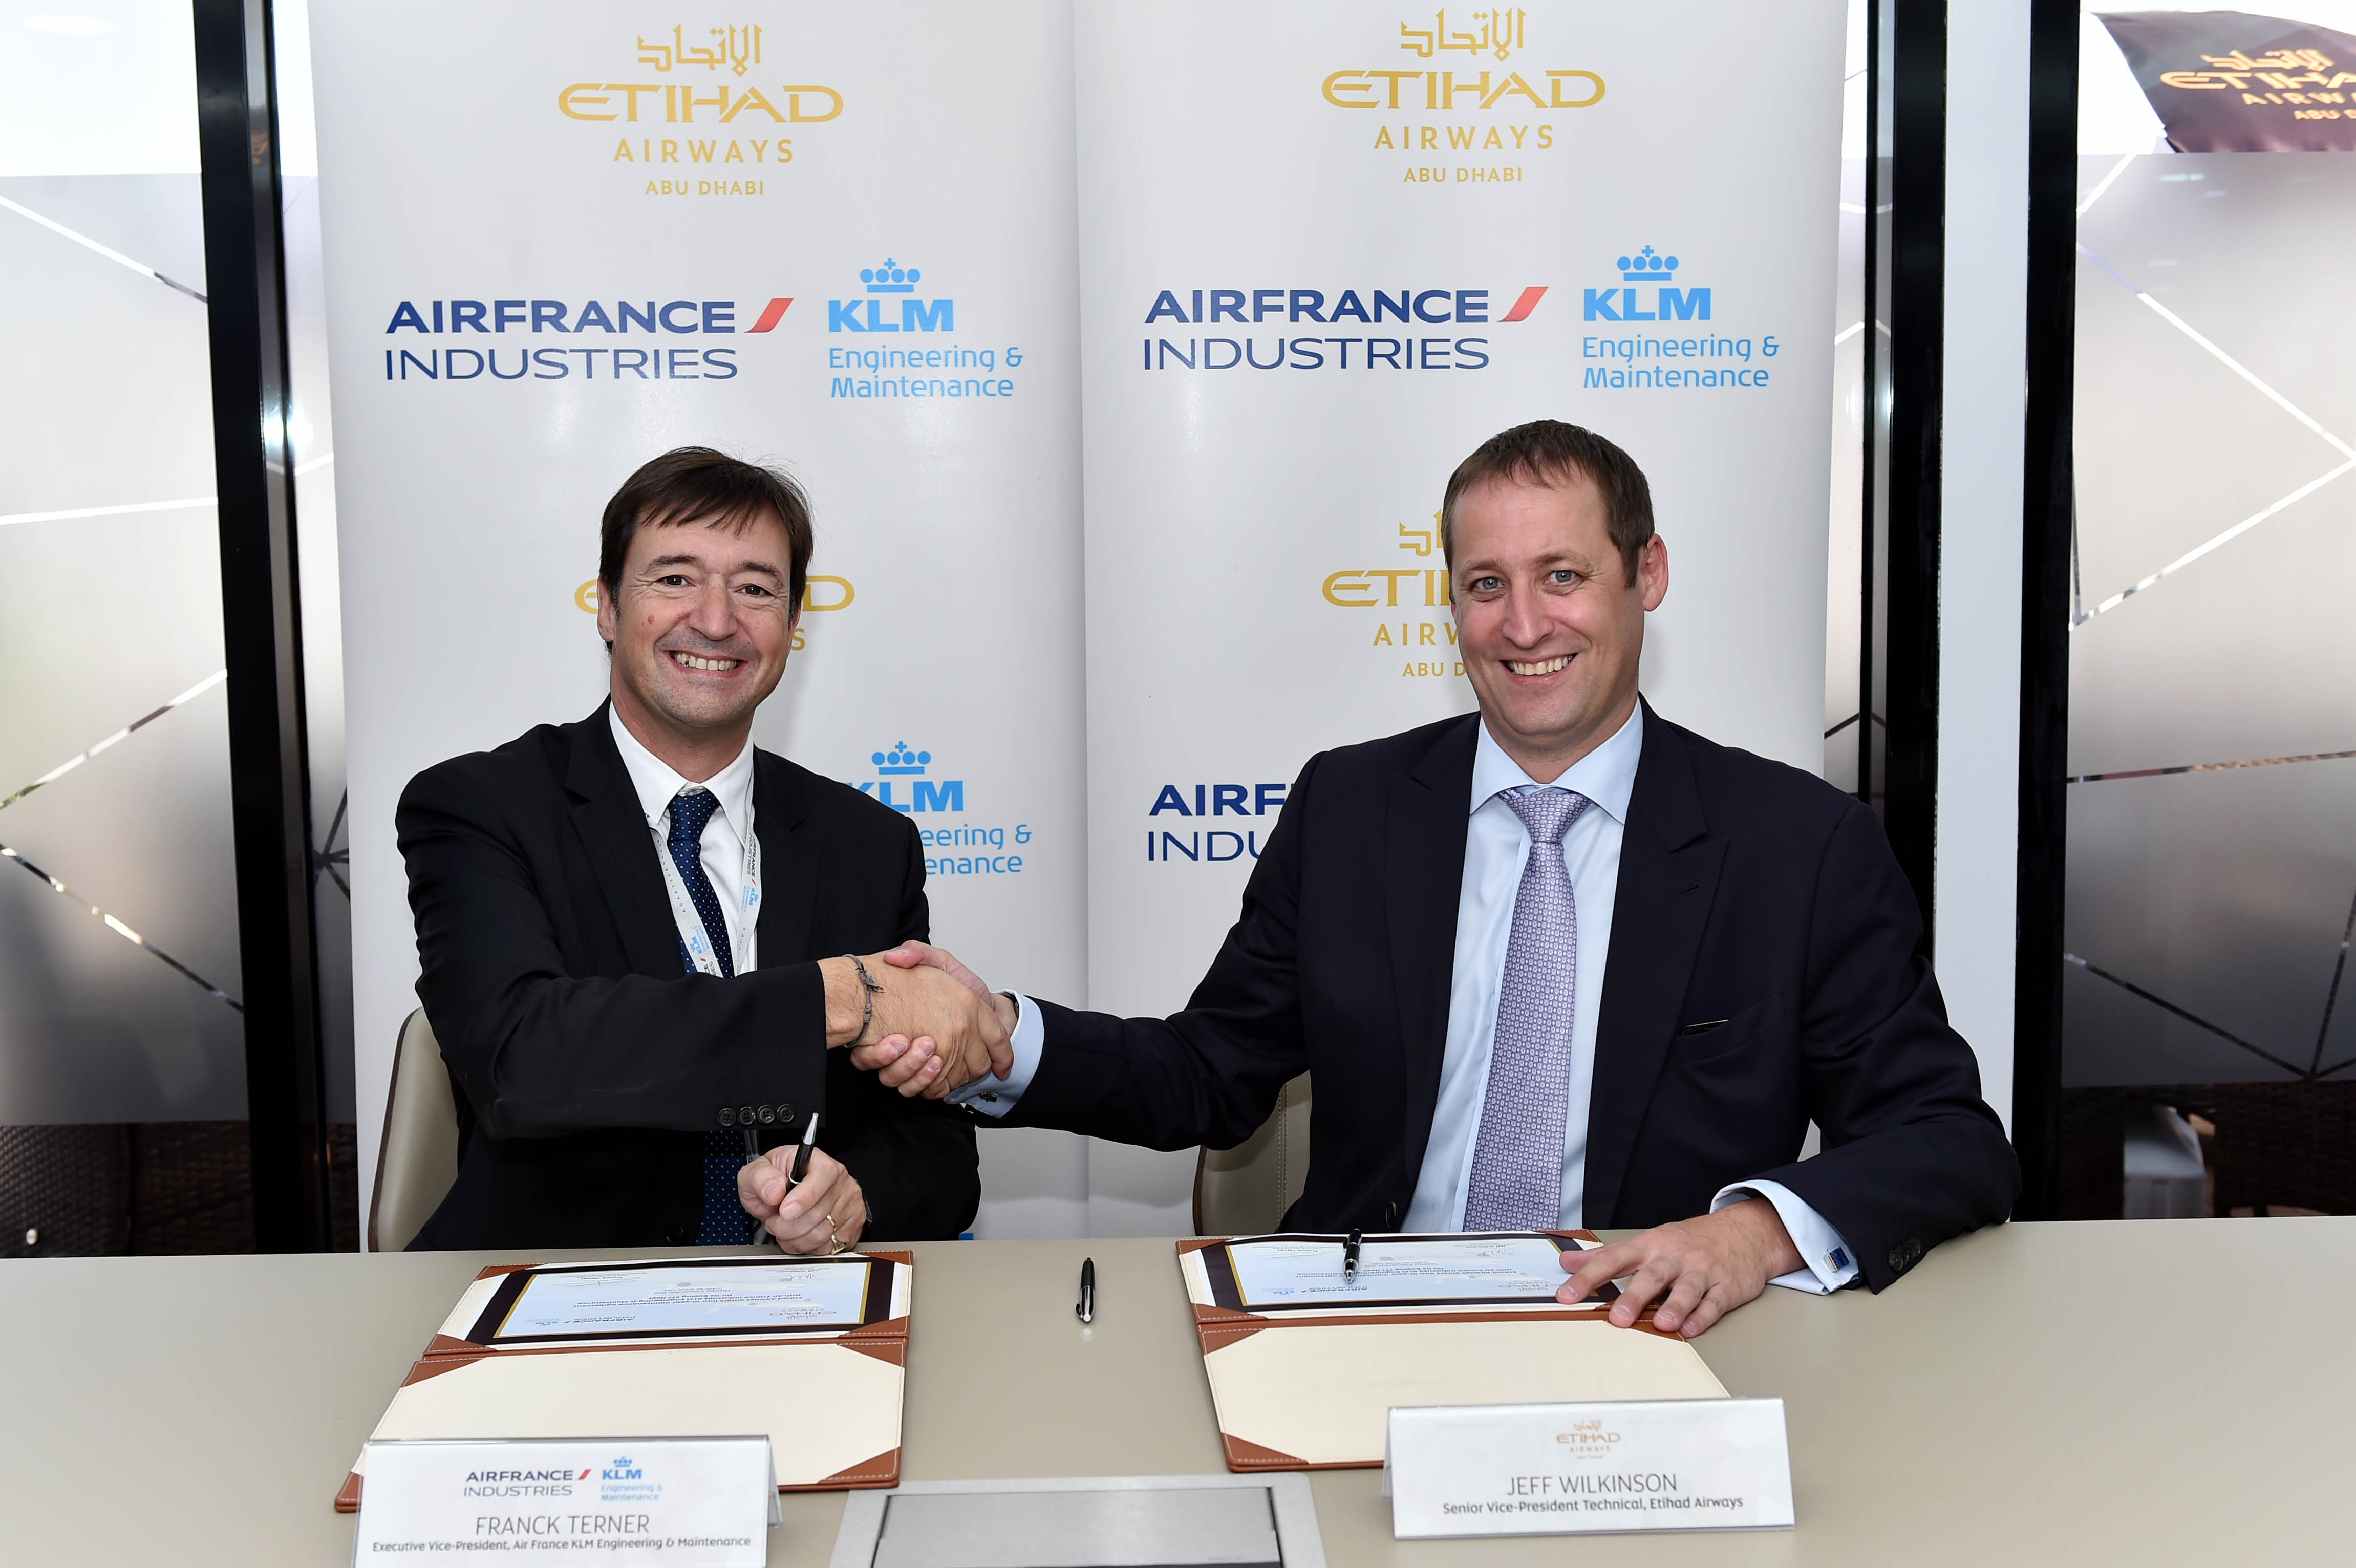 Picture Caption: Jeff Wilkinson, Senior Vice President Technical of Etihad Airways, pictured right, with Franck Terner, Executive Vice President of Air France KLM Engineering & Maintenance, after signing a 10-year agreement for a component maintenance agreement for the carrier's Boeing 777 fleet.